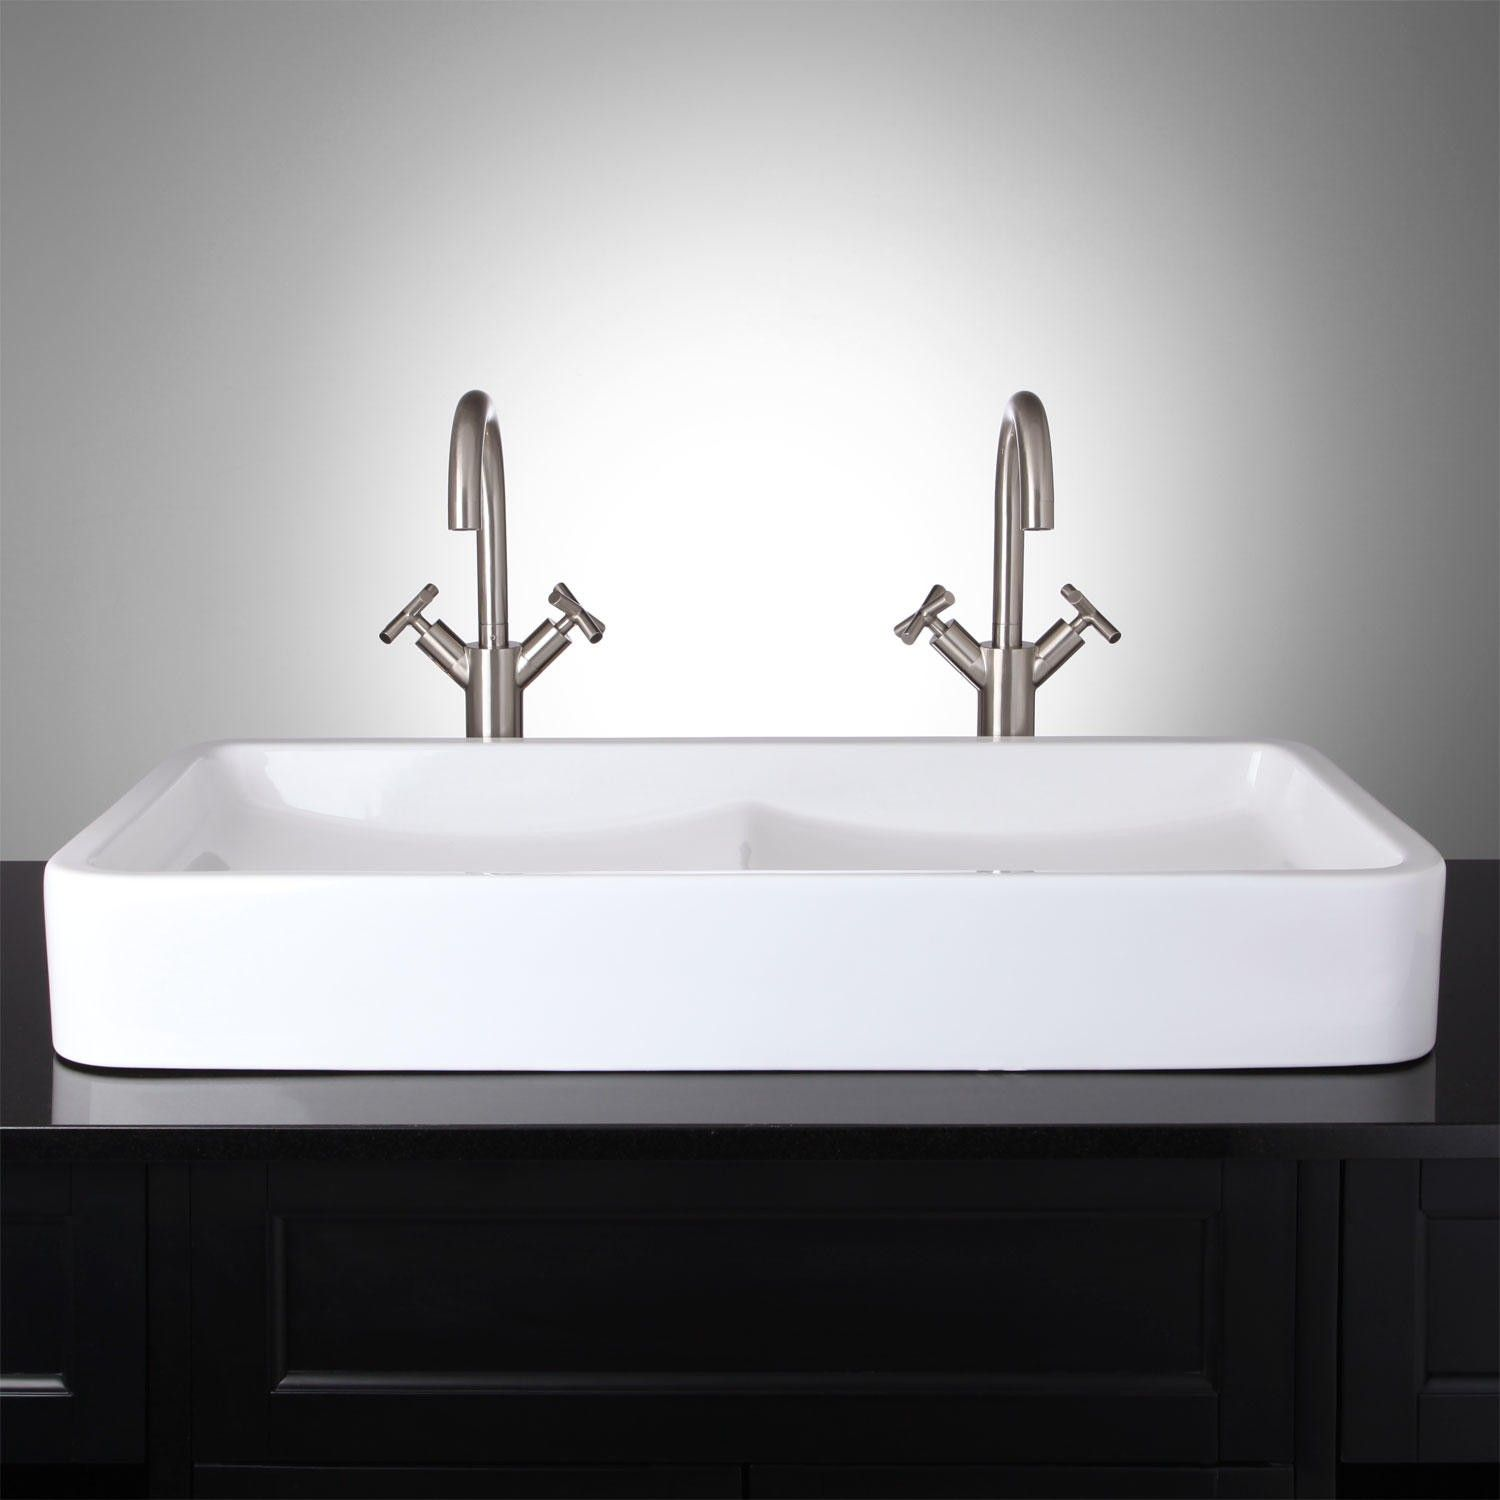 Small Rectangular Bathroom Sink This Is It I Love The Double Sink For A Small Master Bath Idea